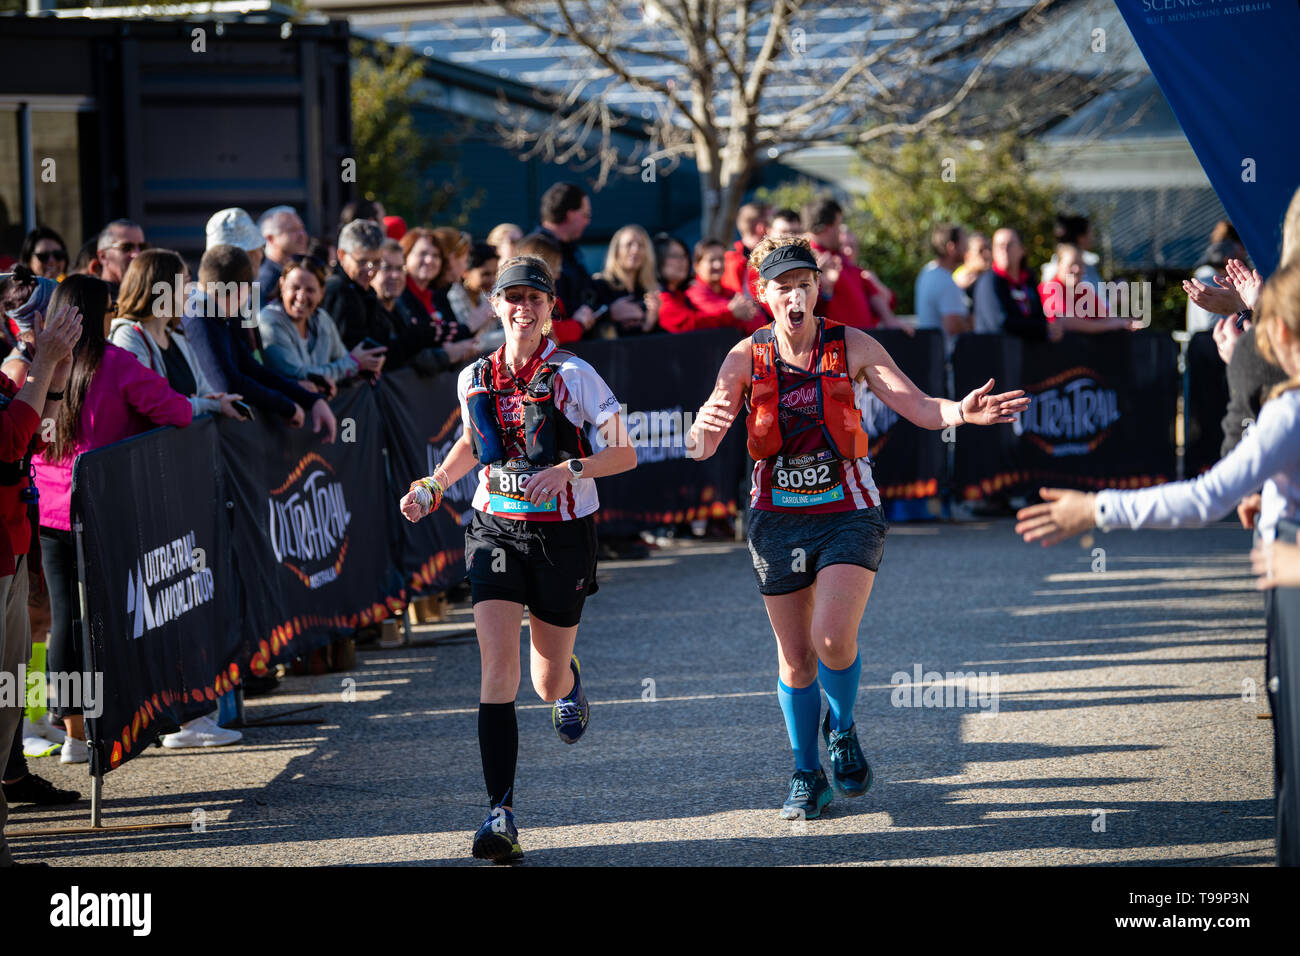 Blue Mountains, Australia - April 16 2019: Ultra-Trail Australia UTA11 race. Runners about to finish on home stretch wave at crowd. - Stock Image